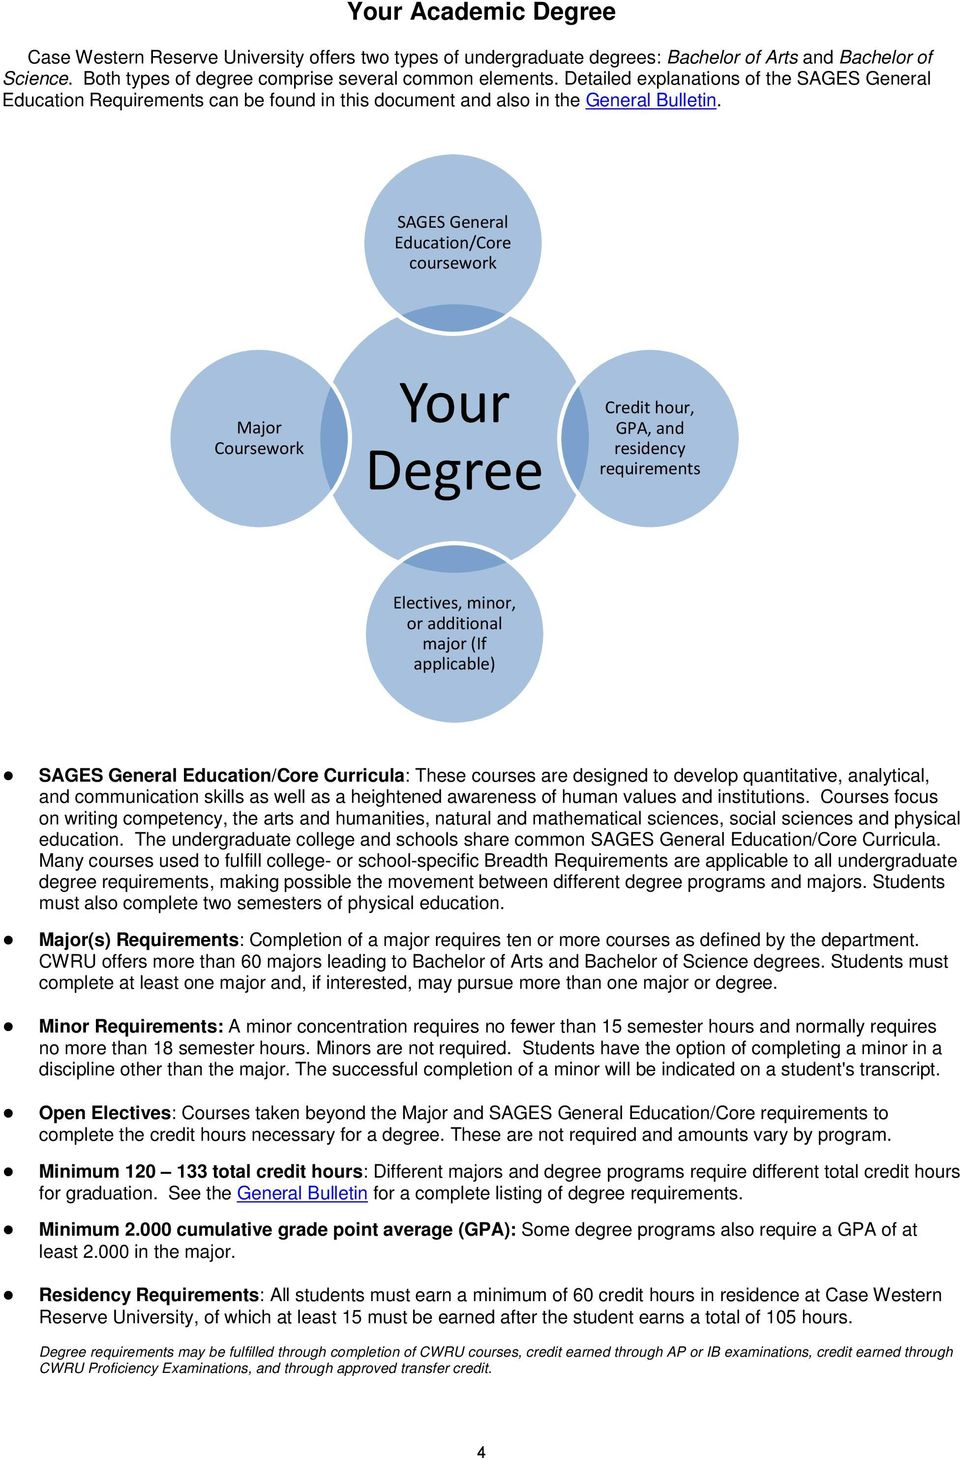 SAGES General Education/Core coursework Major Coursework Your Degree hour, GPA, and residency requirements Electives, minor, or additional major (If applicable) SAGES General Education/Core